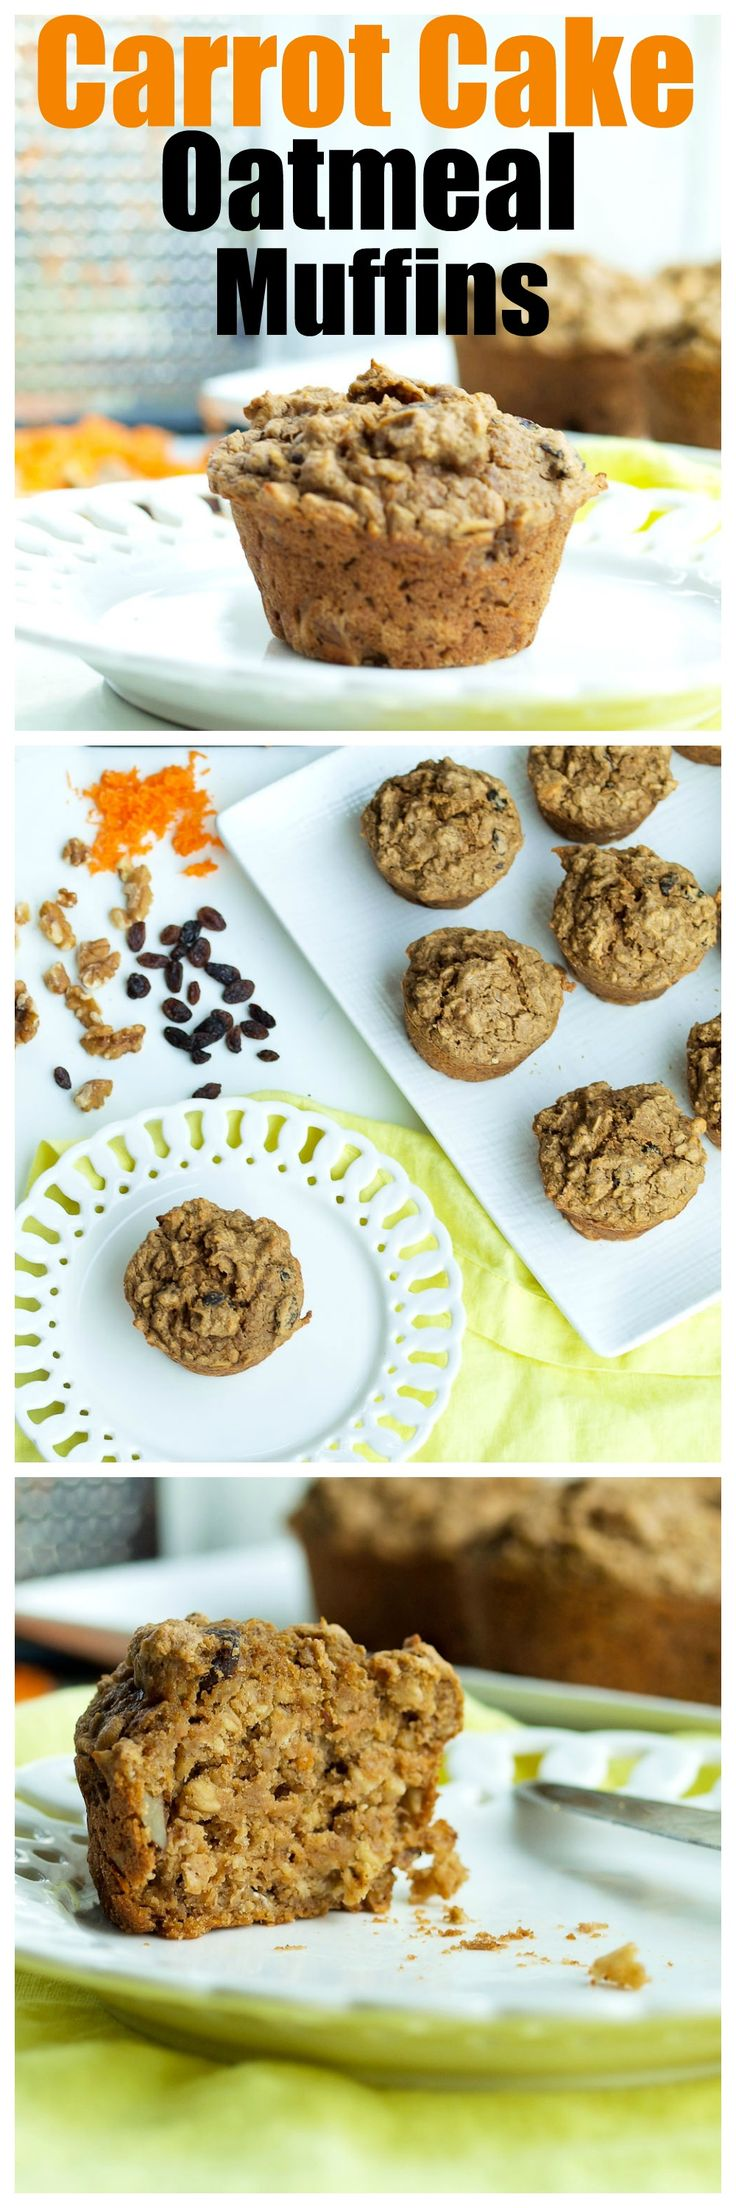 This healthy Carrot Cake Oatmeal Muffins recipe is hearty, filling, and also vegan and gluten-free! A great back-to-school breakfast recipe.